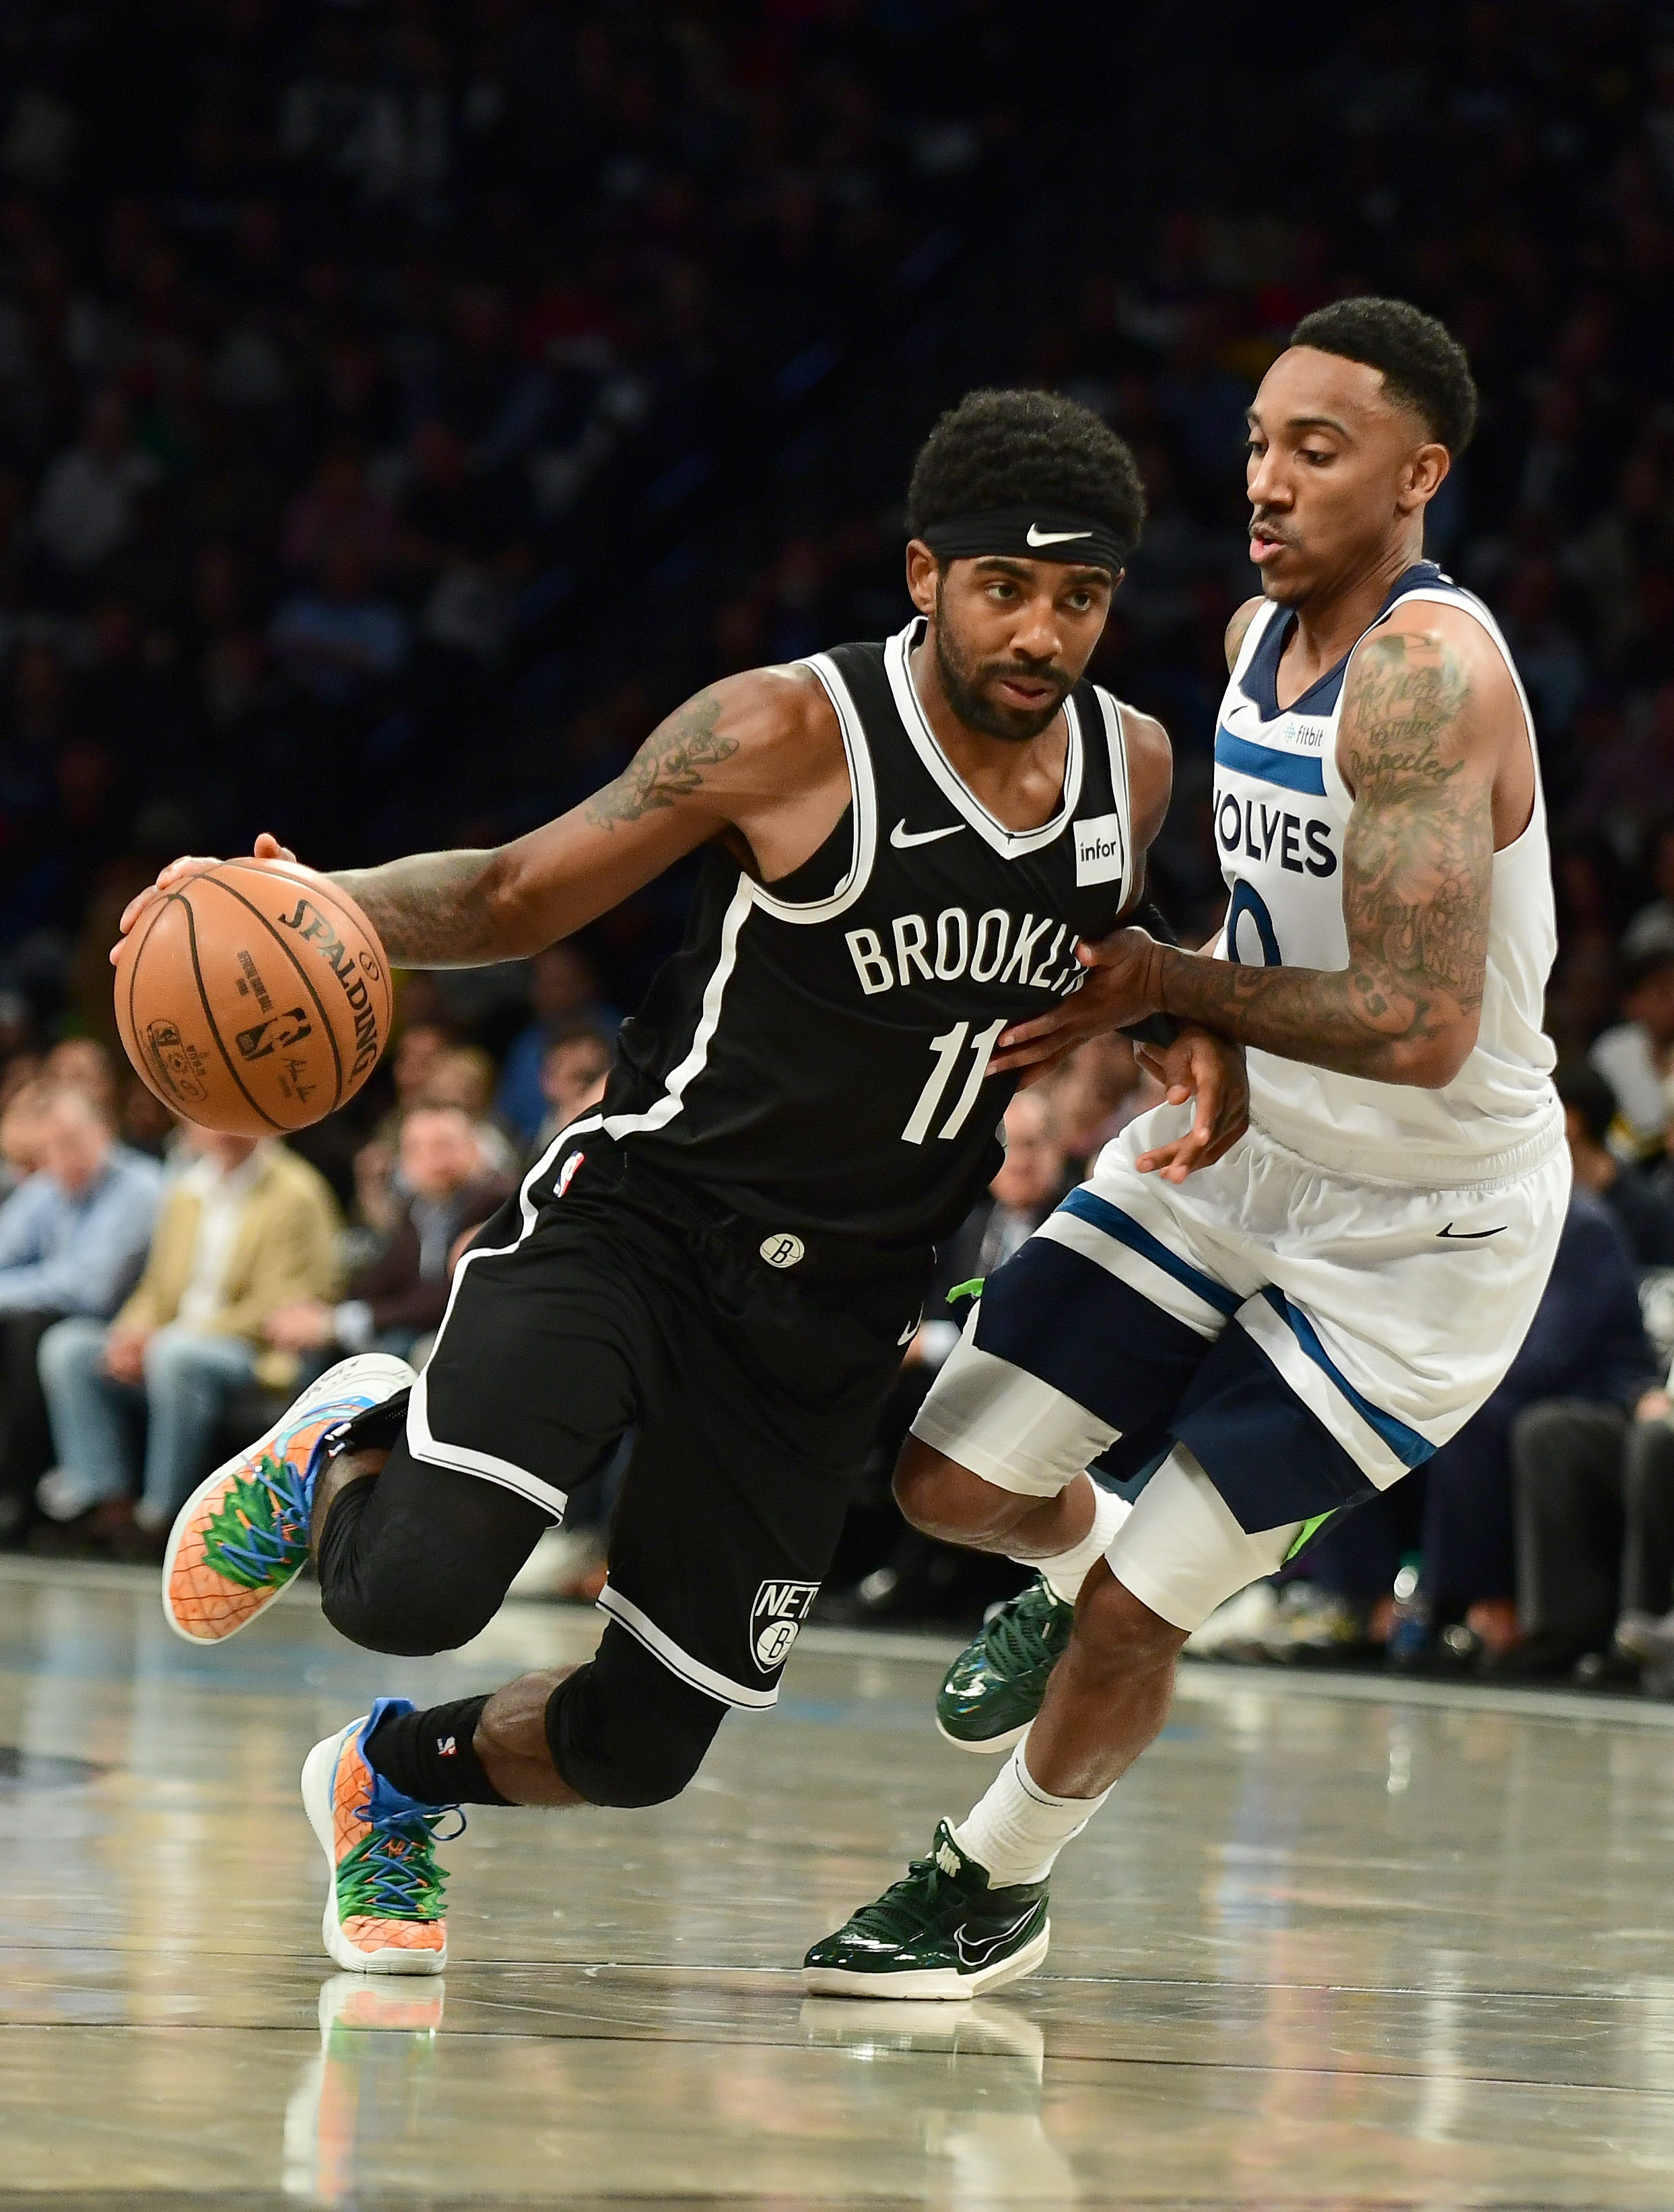 Kyrie Irving dazzles with 50 points in Nets debut, though final shot doesnt go in OT loss